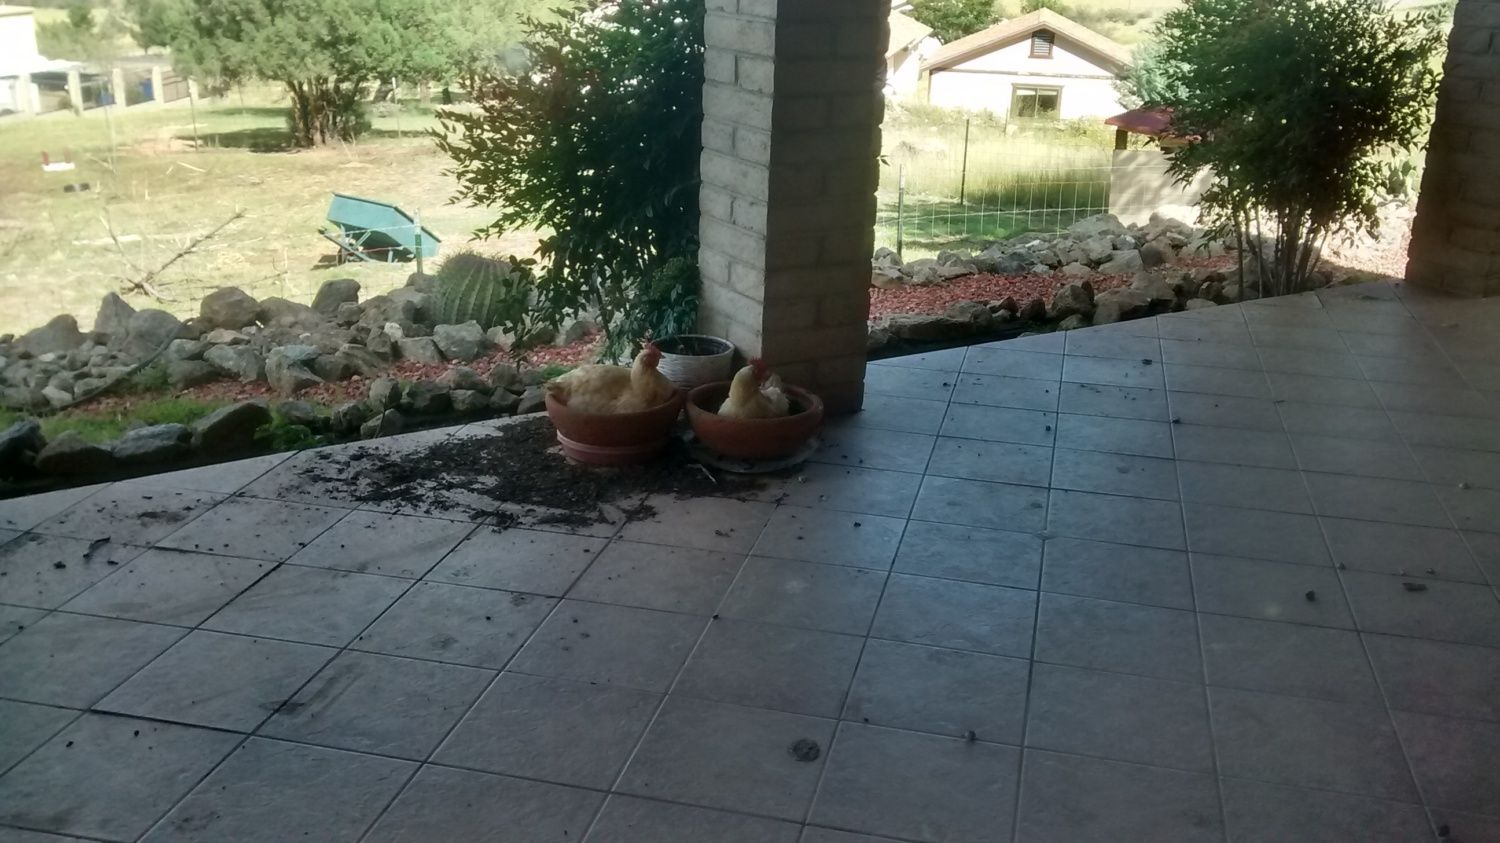 I don't know why anyone would want flowers in their pots when they can have chickens!